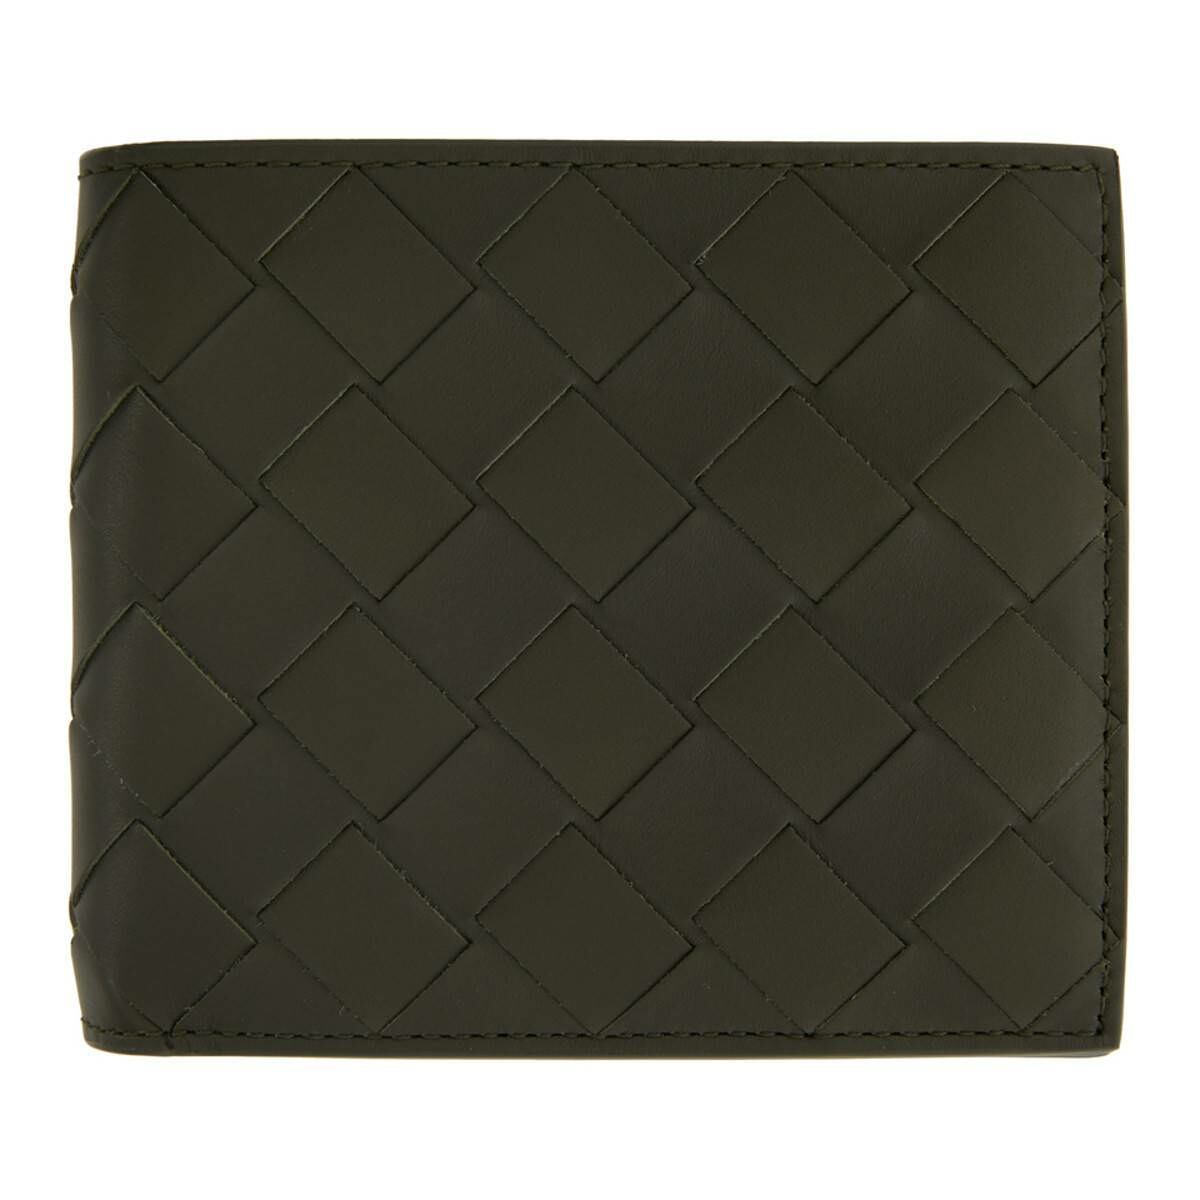 Bottega Veneta Grey Intrecciato Bifold Wallet Ssense USA MEN Men ACCESSORIES Mens WALLETS